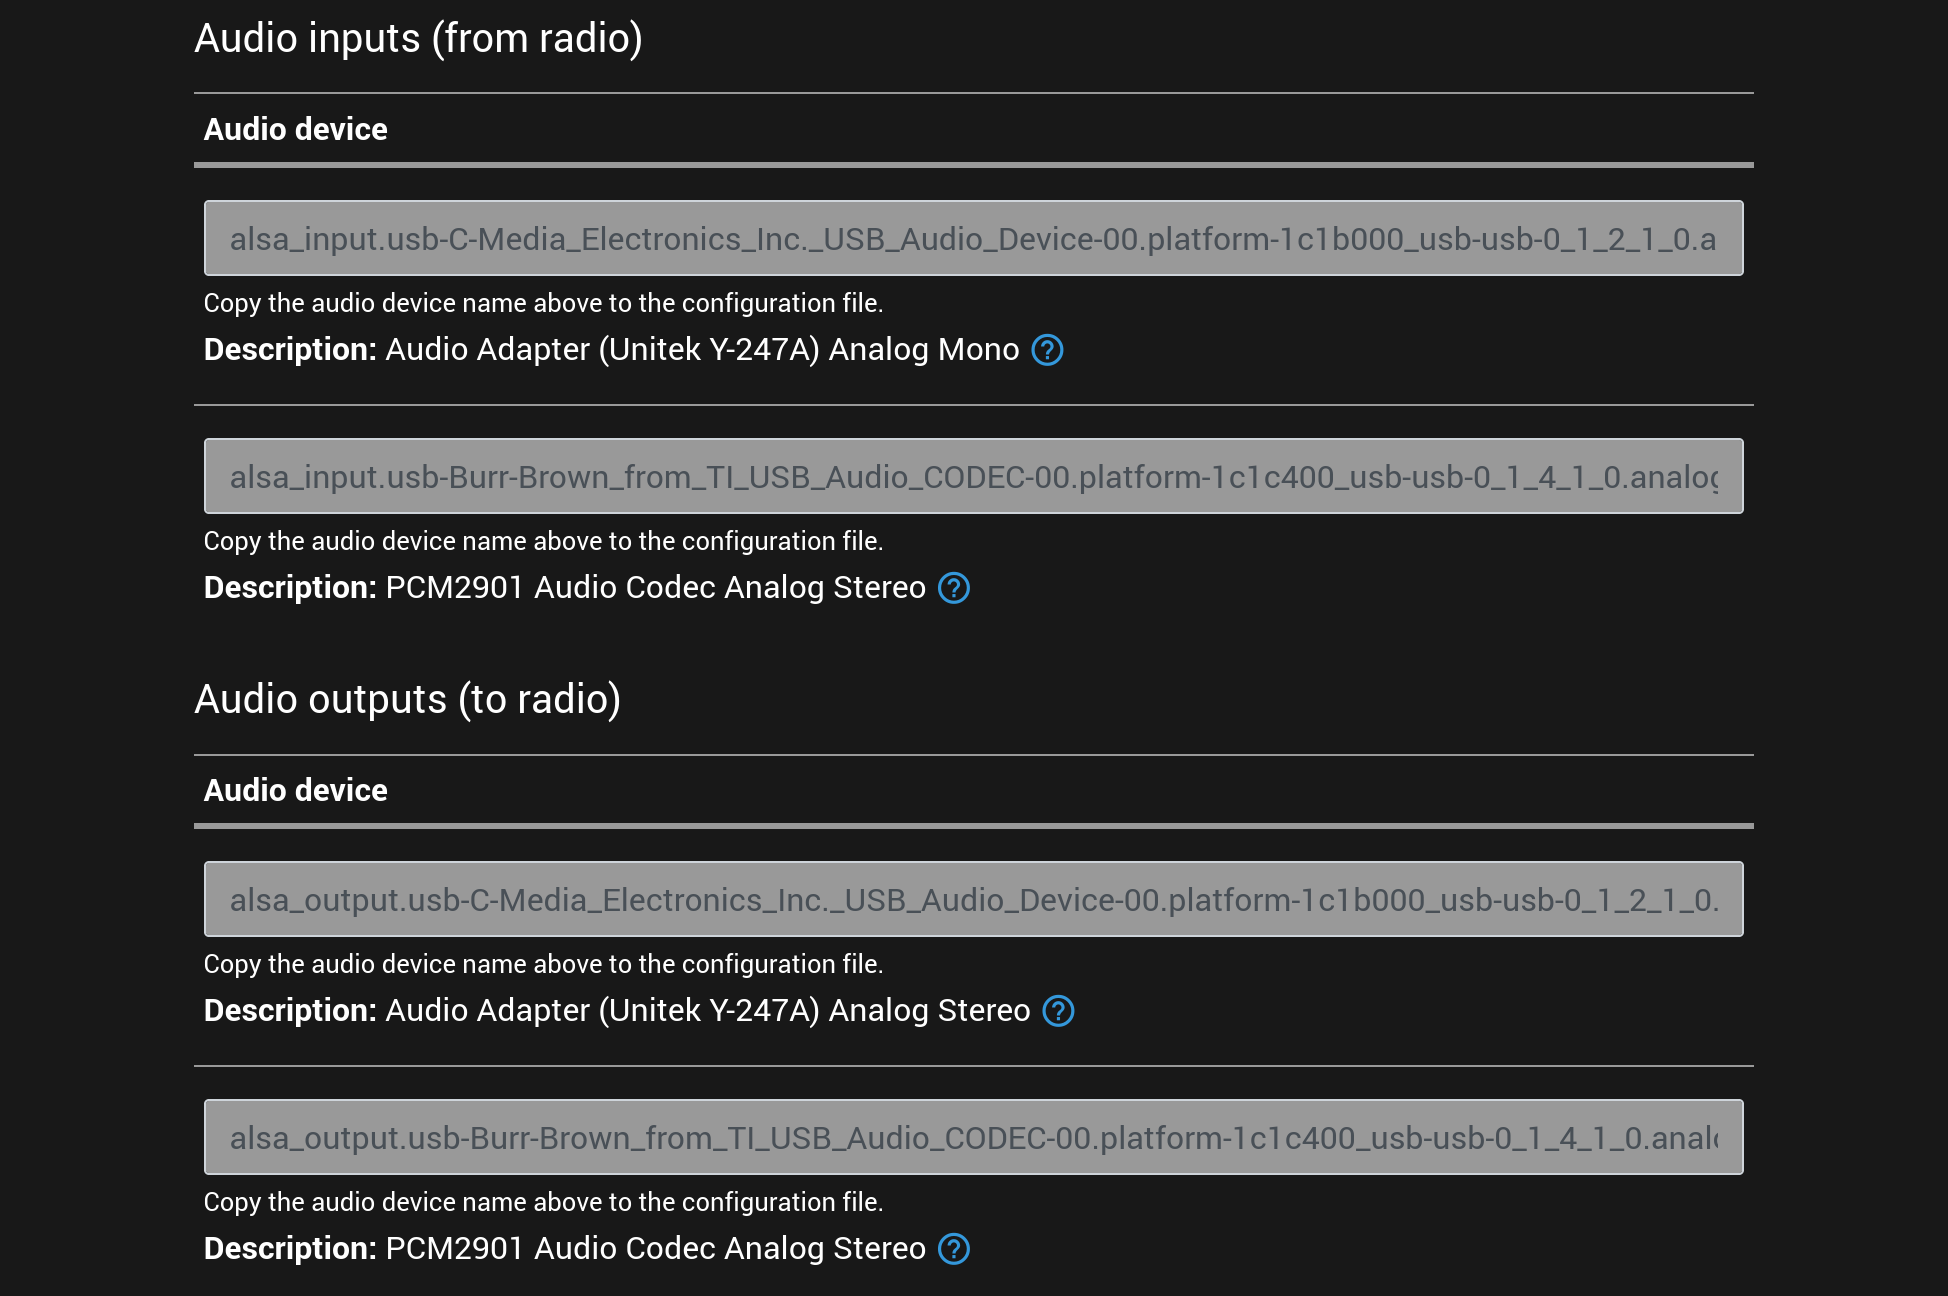 An example screenshot of the list of supported audio input and output devices displayed in the setup user interface